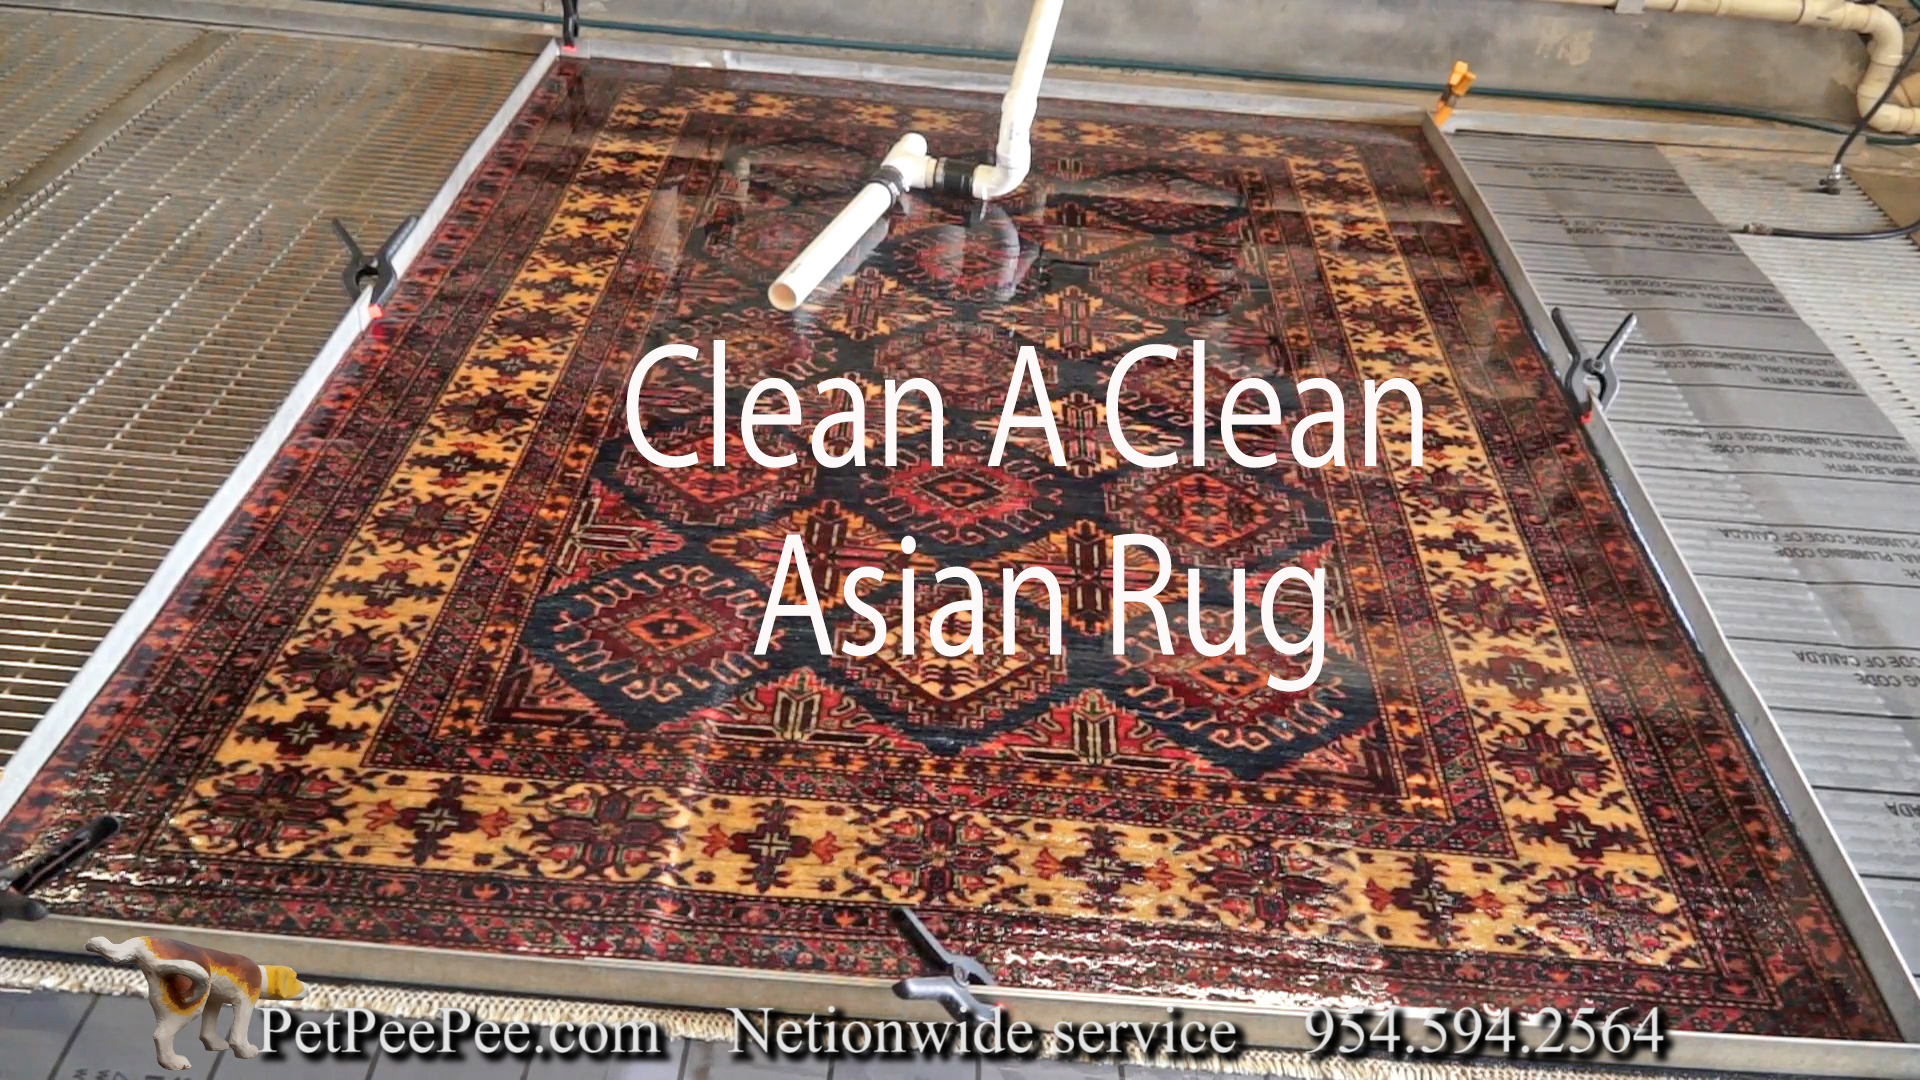 Oriental rug cleaning from urine odor